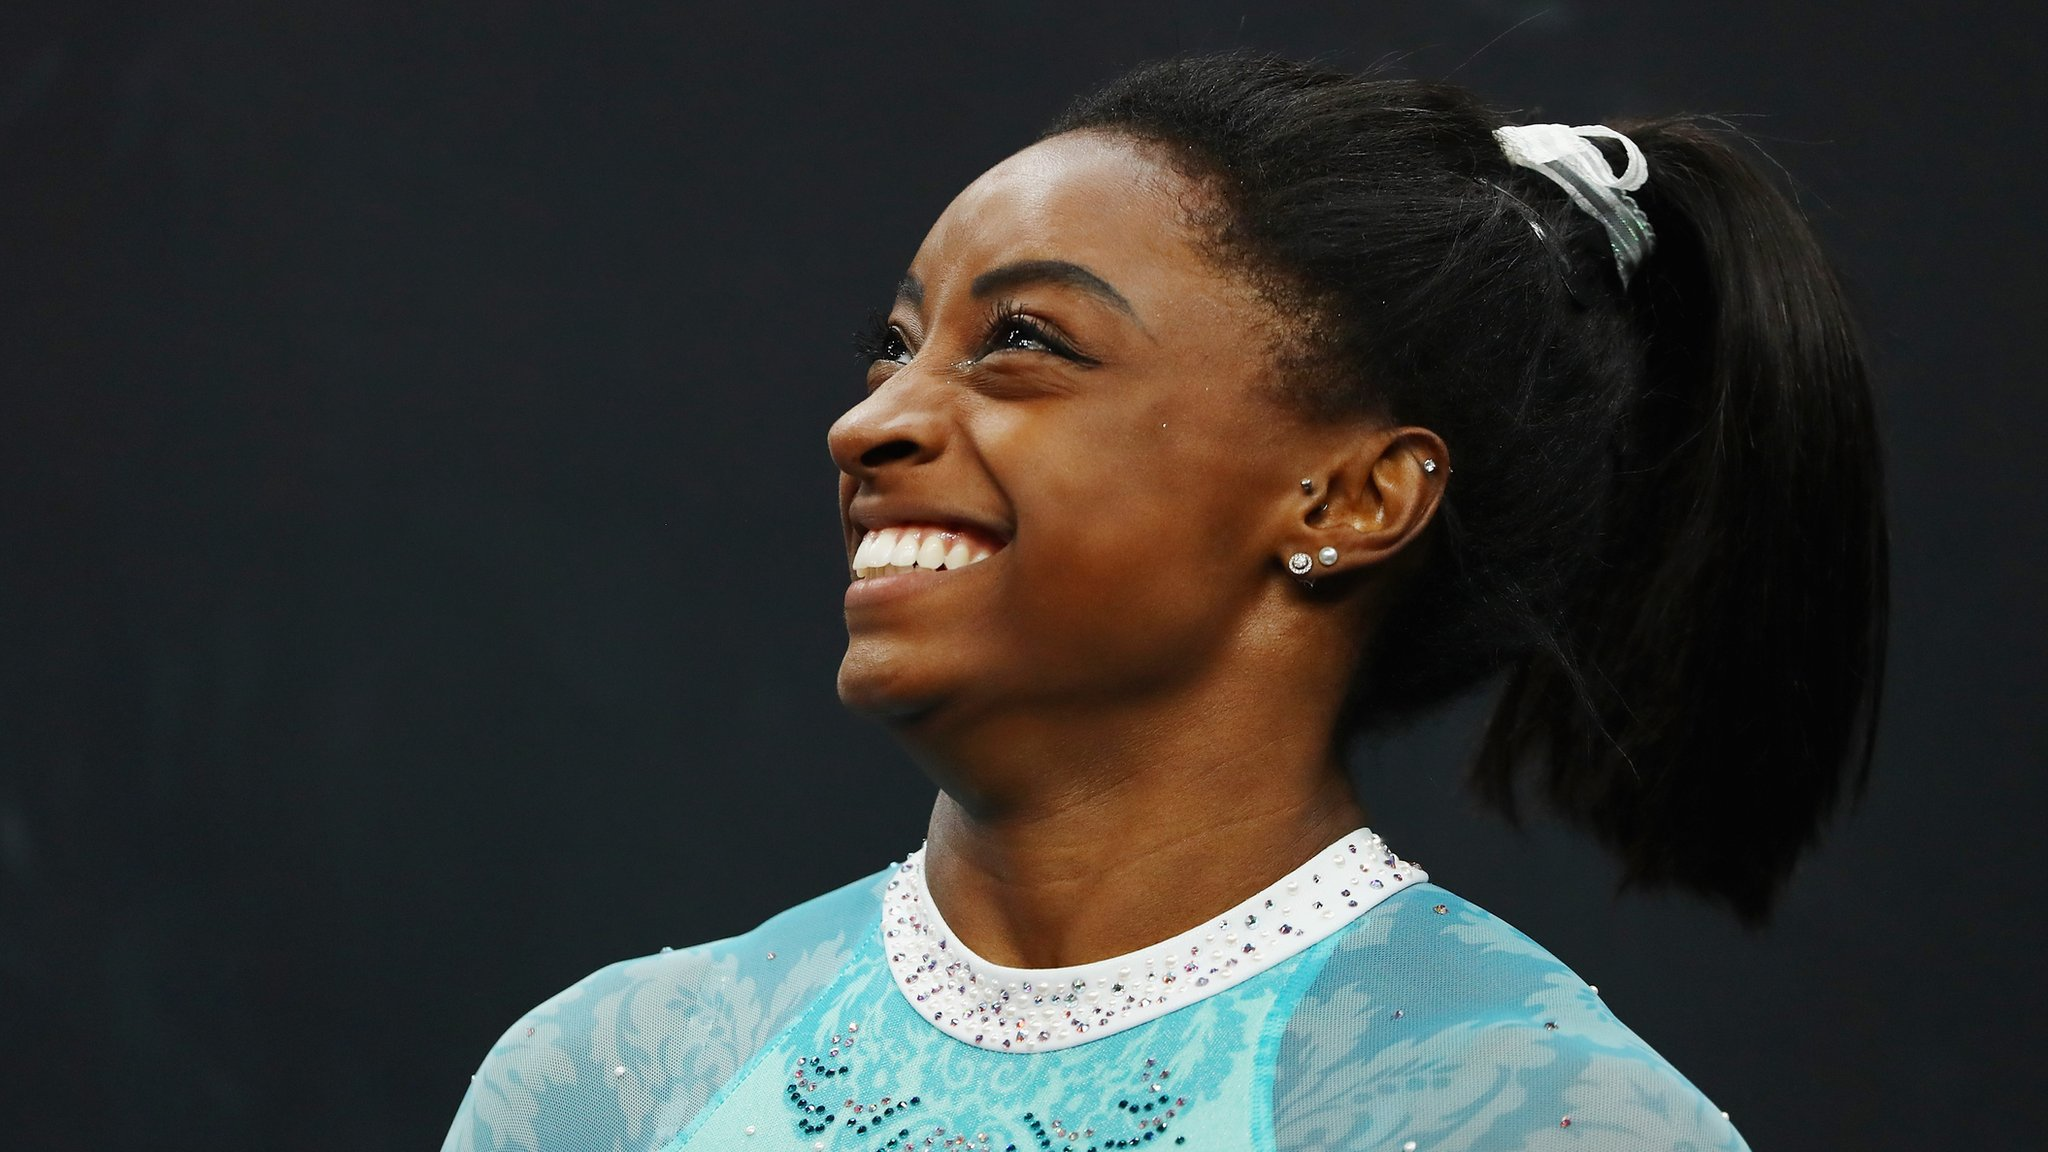 Biles wins record fifth title - wearing outfit to support sex abuse victims